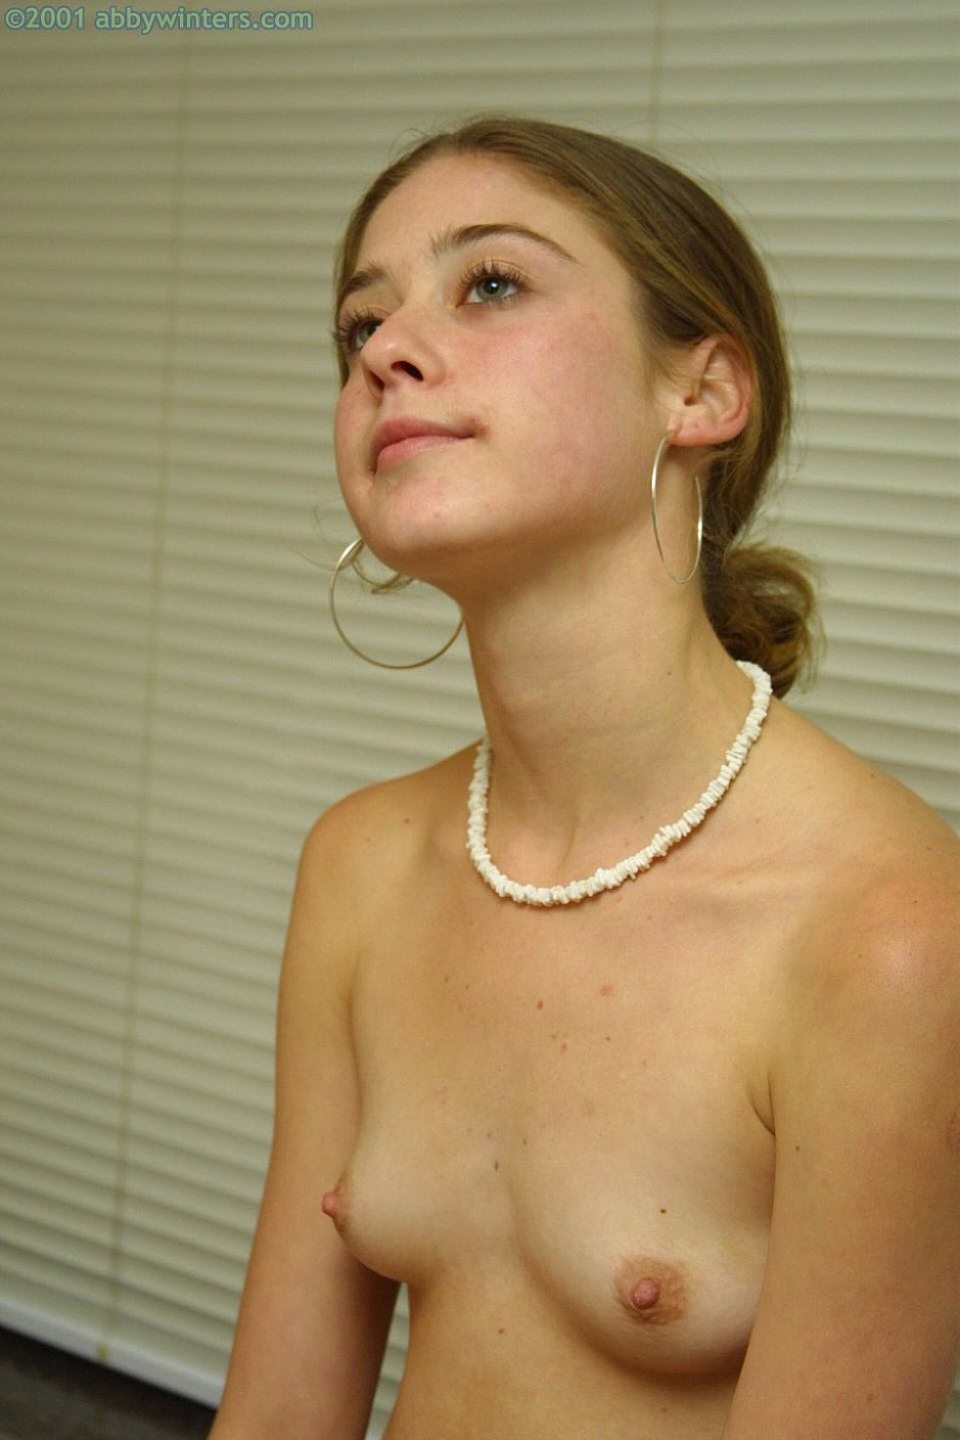 abby winters nudes anthea